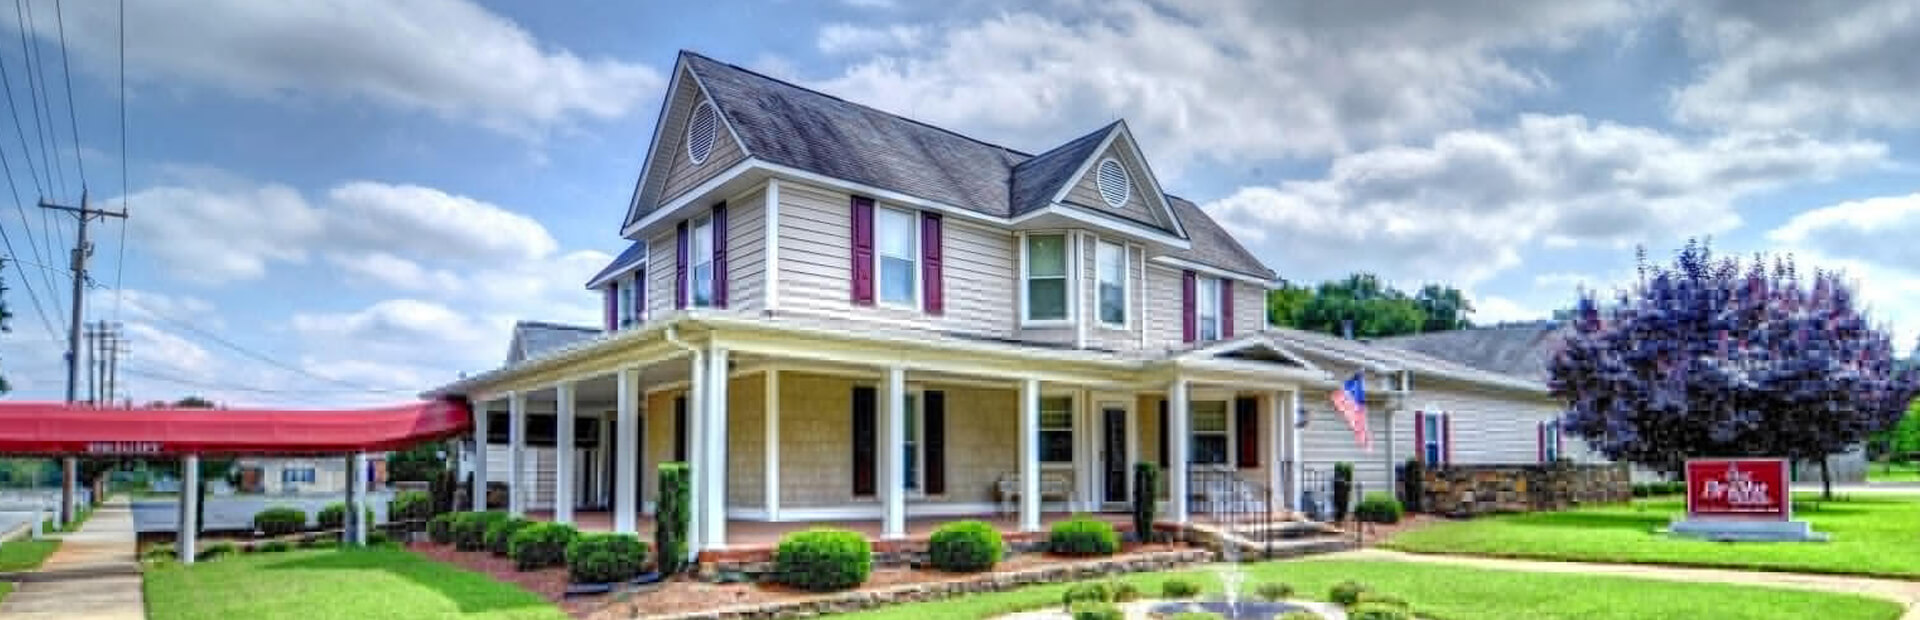 Bright Funeral Home in Wake Forest, NC